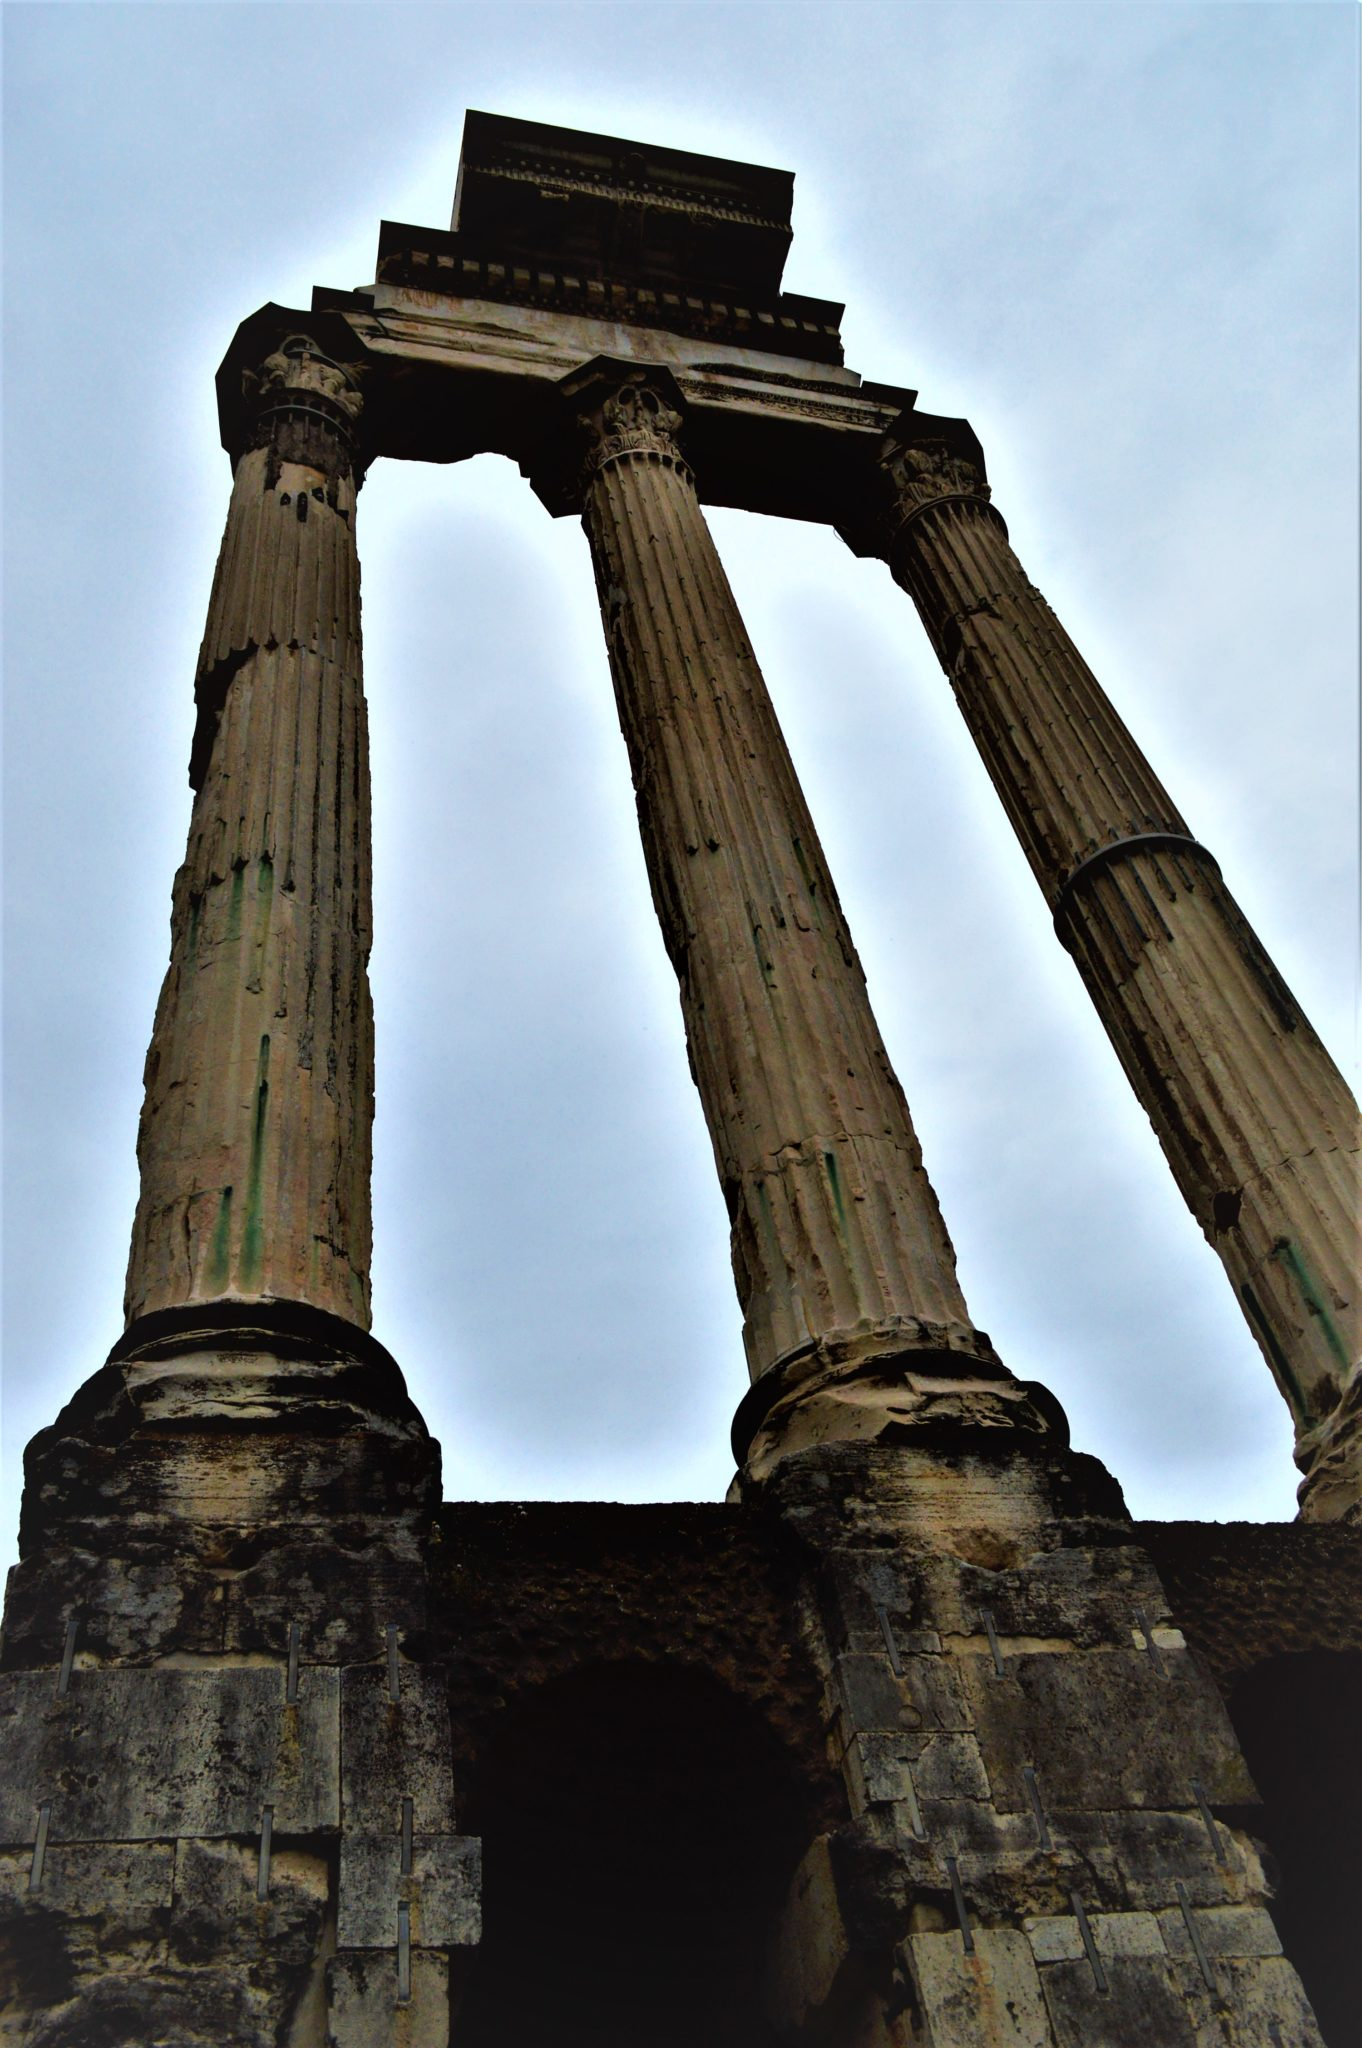 Tall columns in the Roman Forum, things to do in Rome, Italy